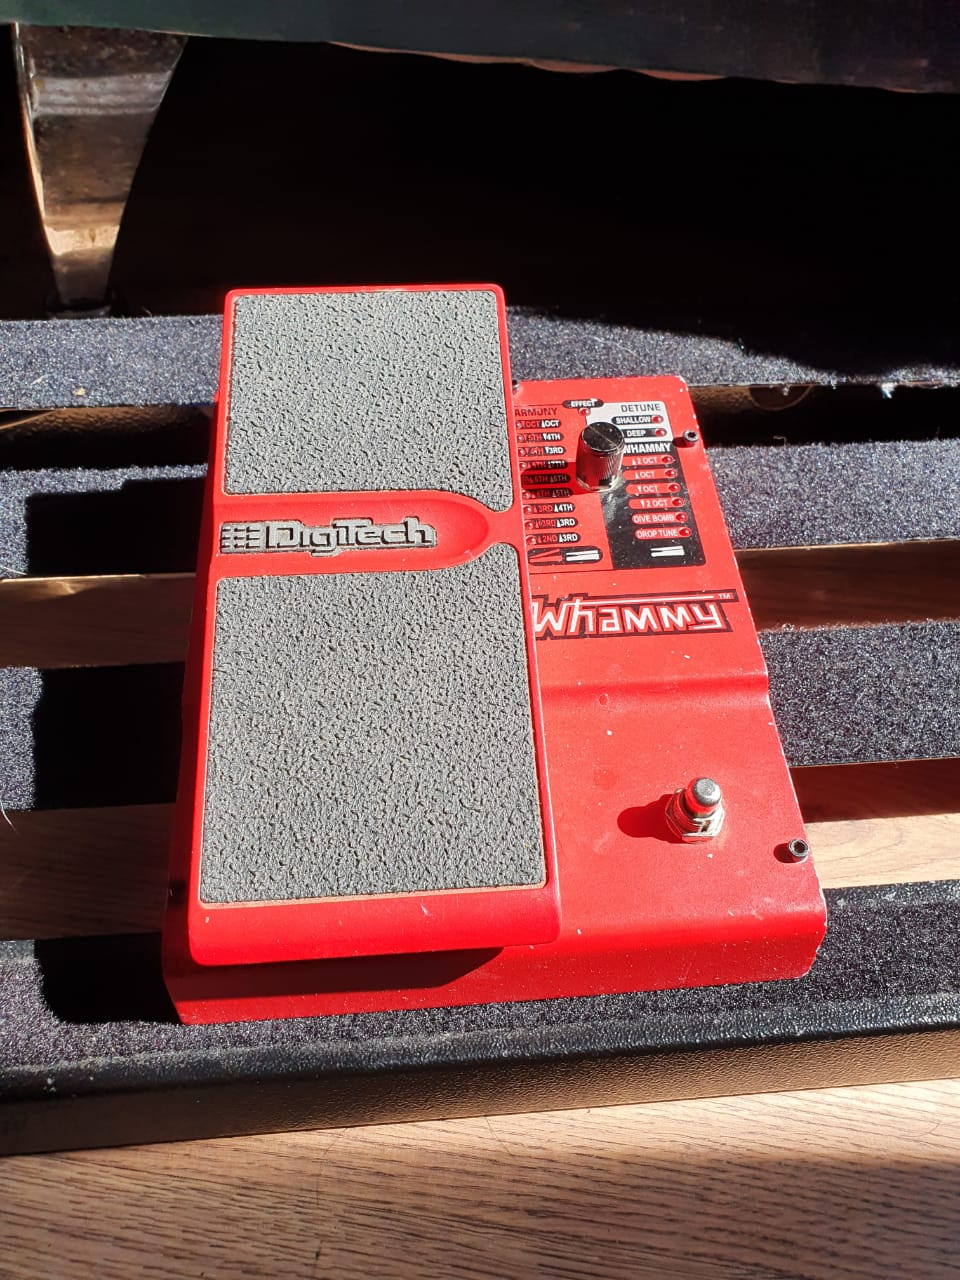 [Vendido] Digitech Whammy 4 Whatsa11